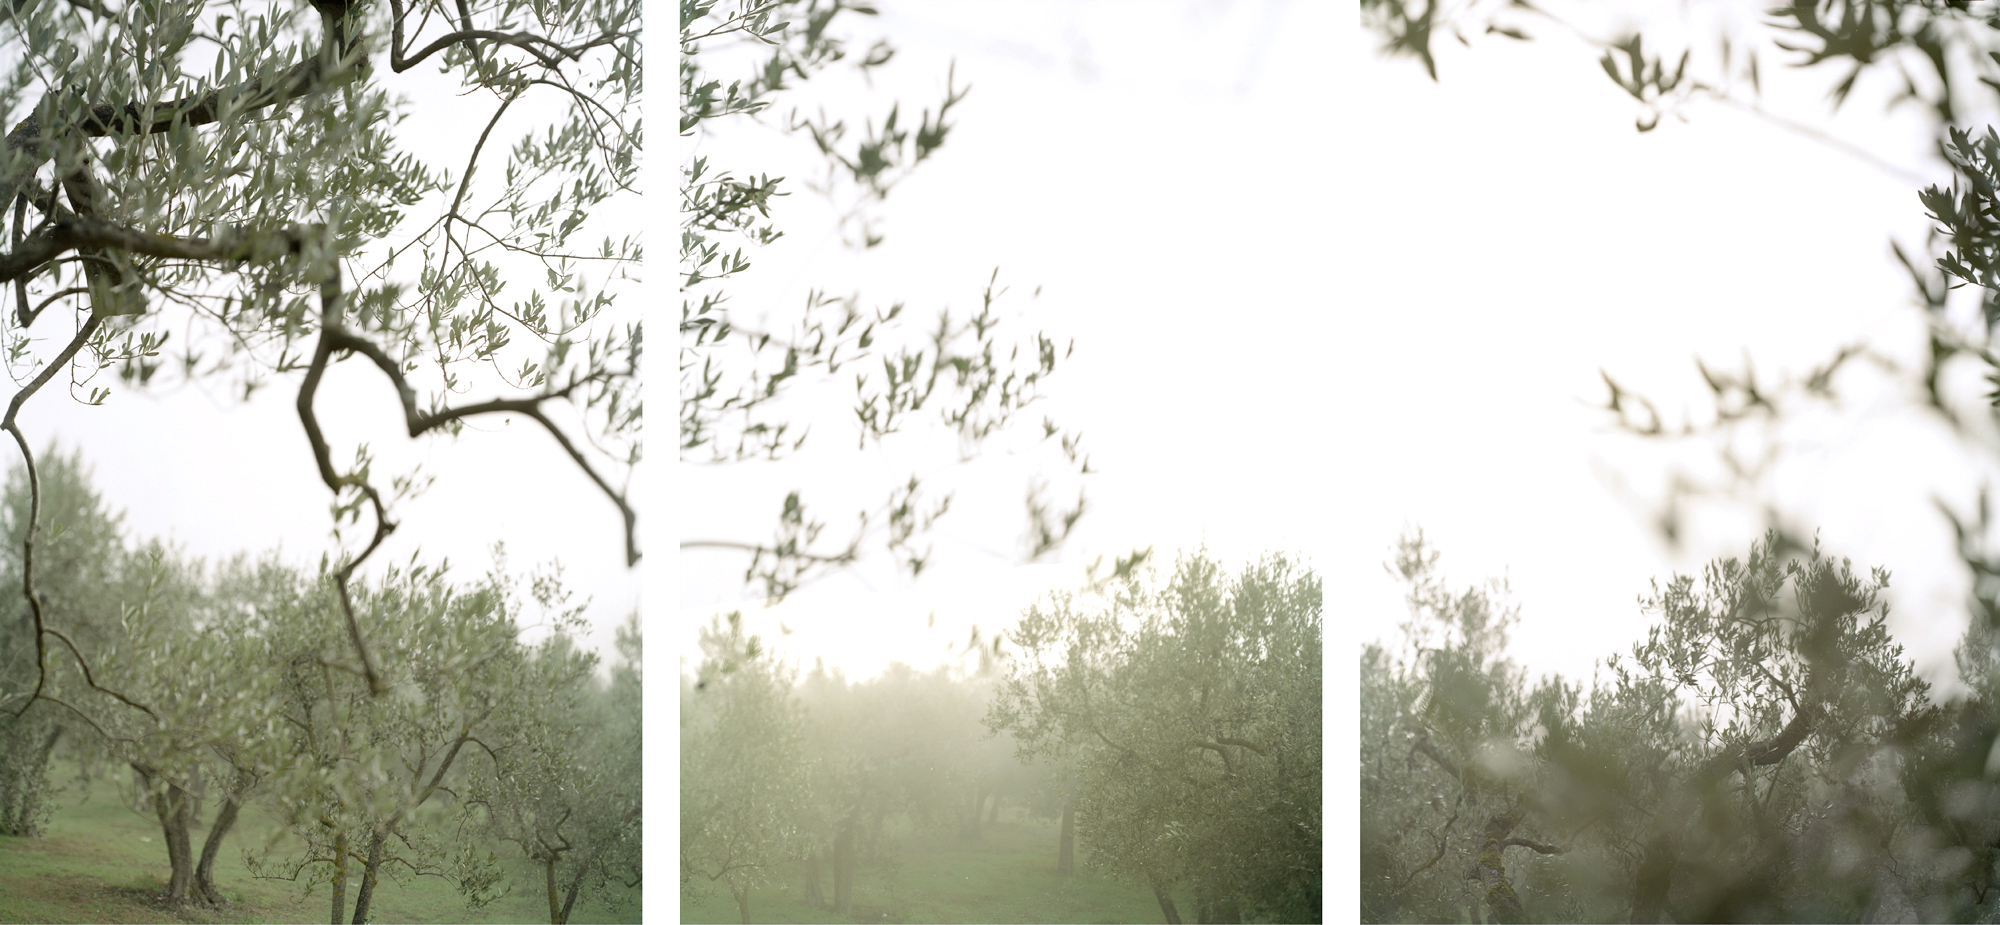 JoAnn Verburg, Crazy Fog, 2008, 3 prints, 40 inches x 7.5 feet, edition of 10, price on request